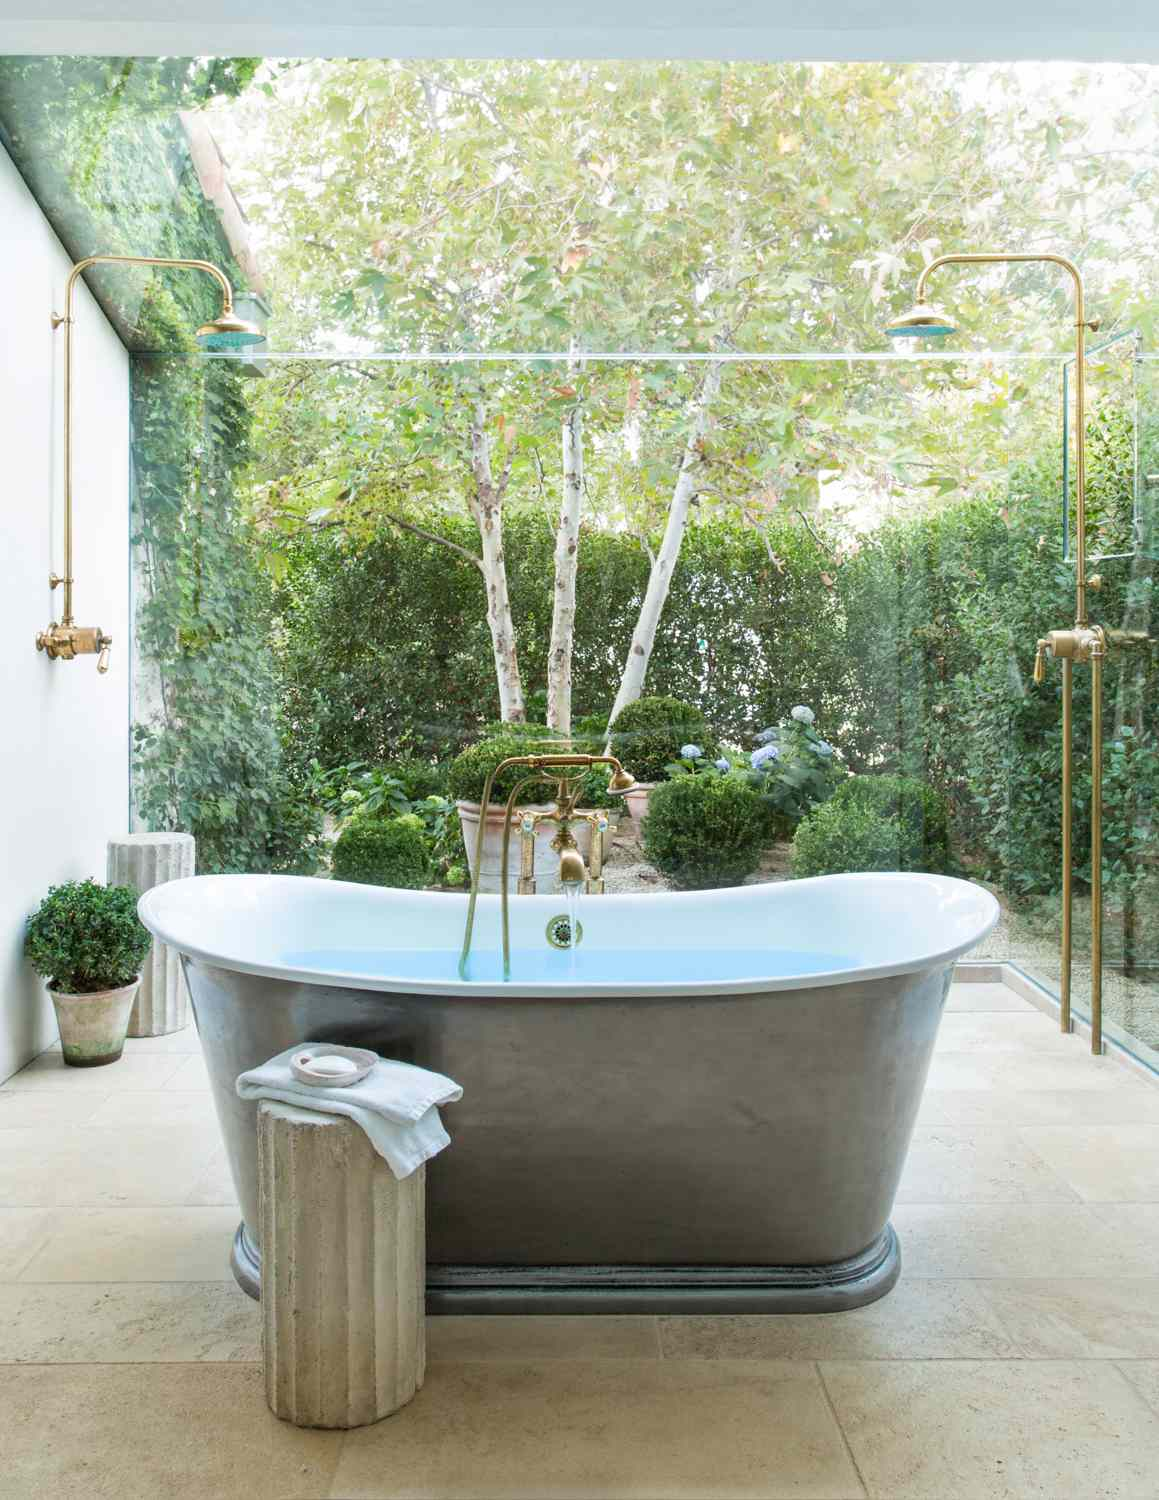 What are garden tubs?